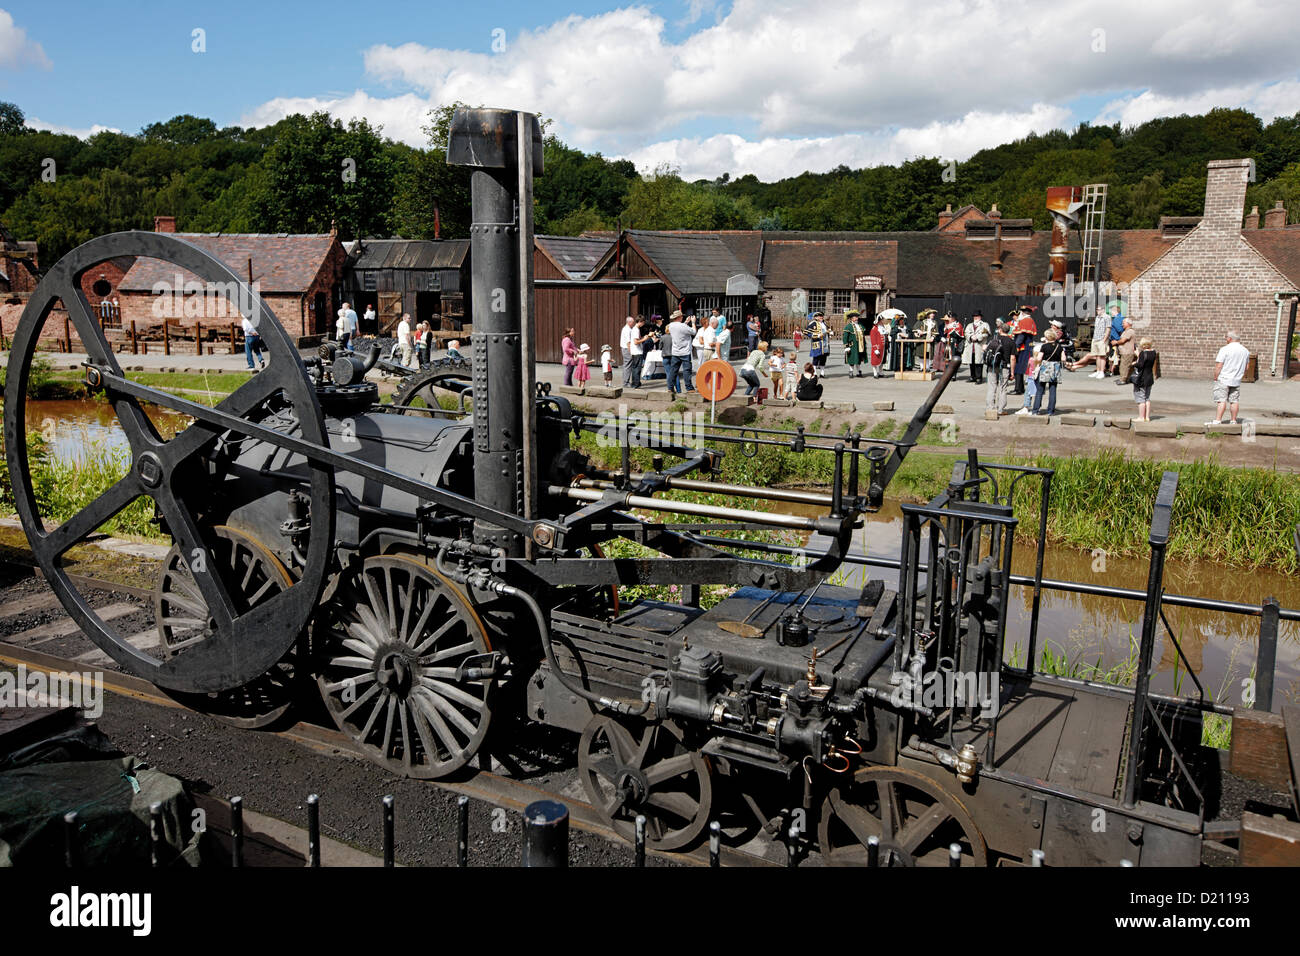 Steam engine from 1850 at The Iron Gorge Museums, Ironbridge Gorge, Telford, Shropshire, England, Great Britain, - Stock Image